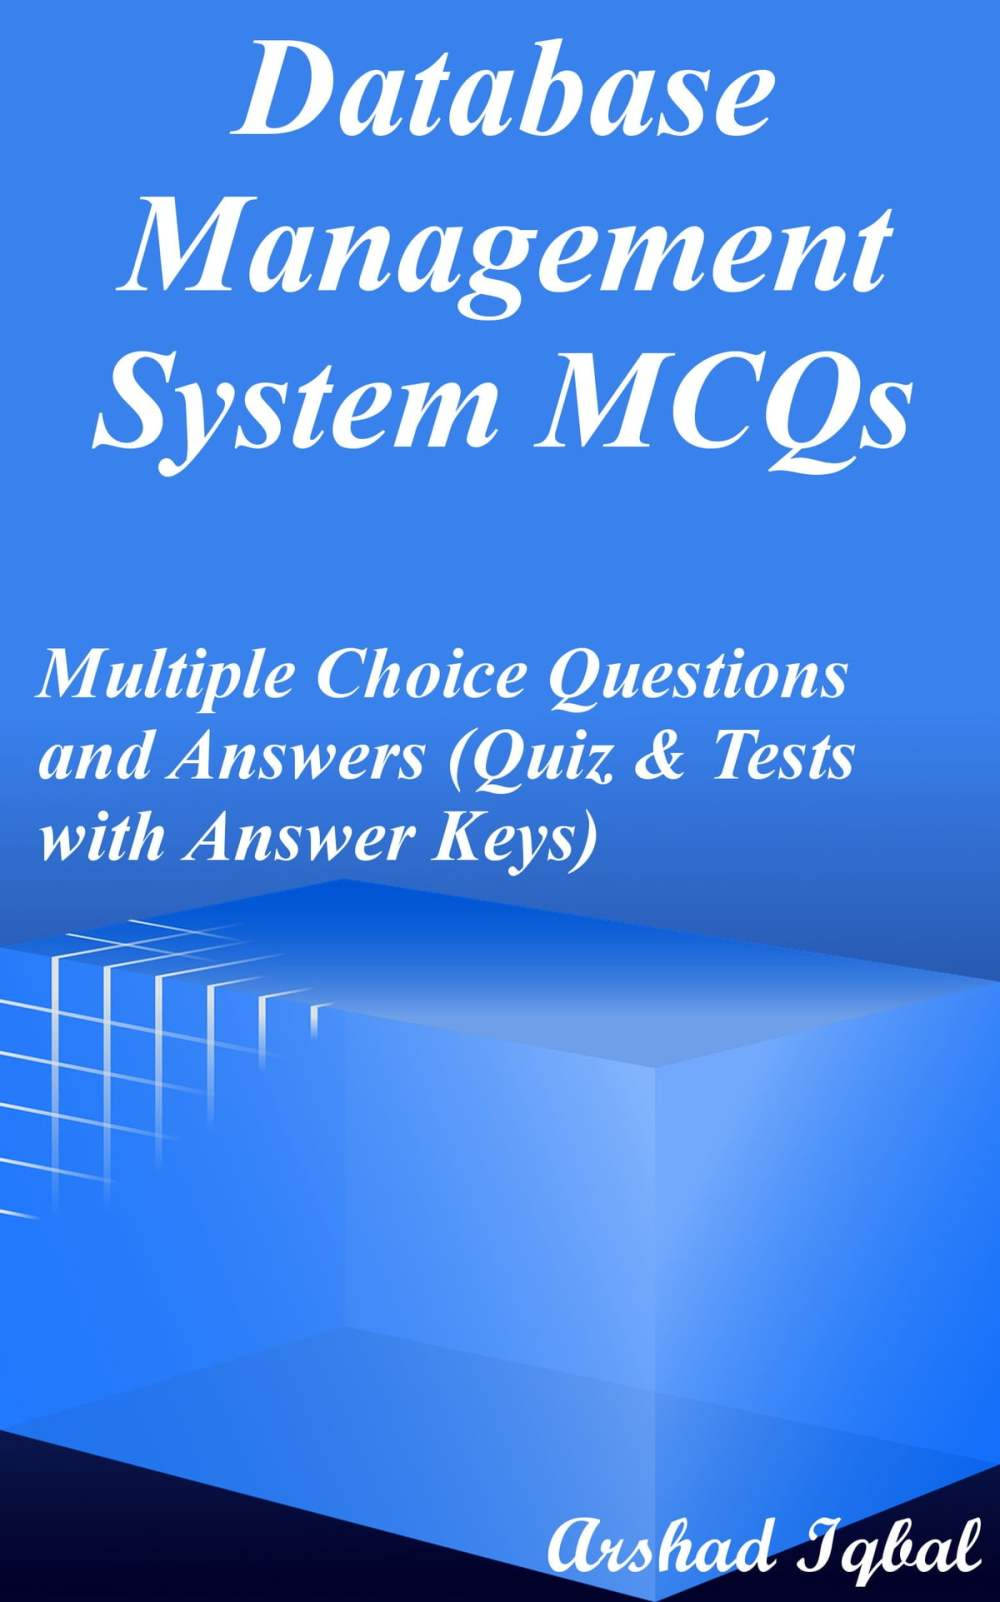 medium resolution of database management system mcqs multiple choice questions and answers quiz tests with answer keys ebook by arshad iqbal 9781310041945 rakuten kobo